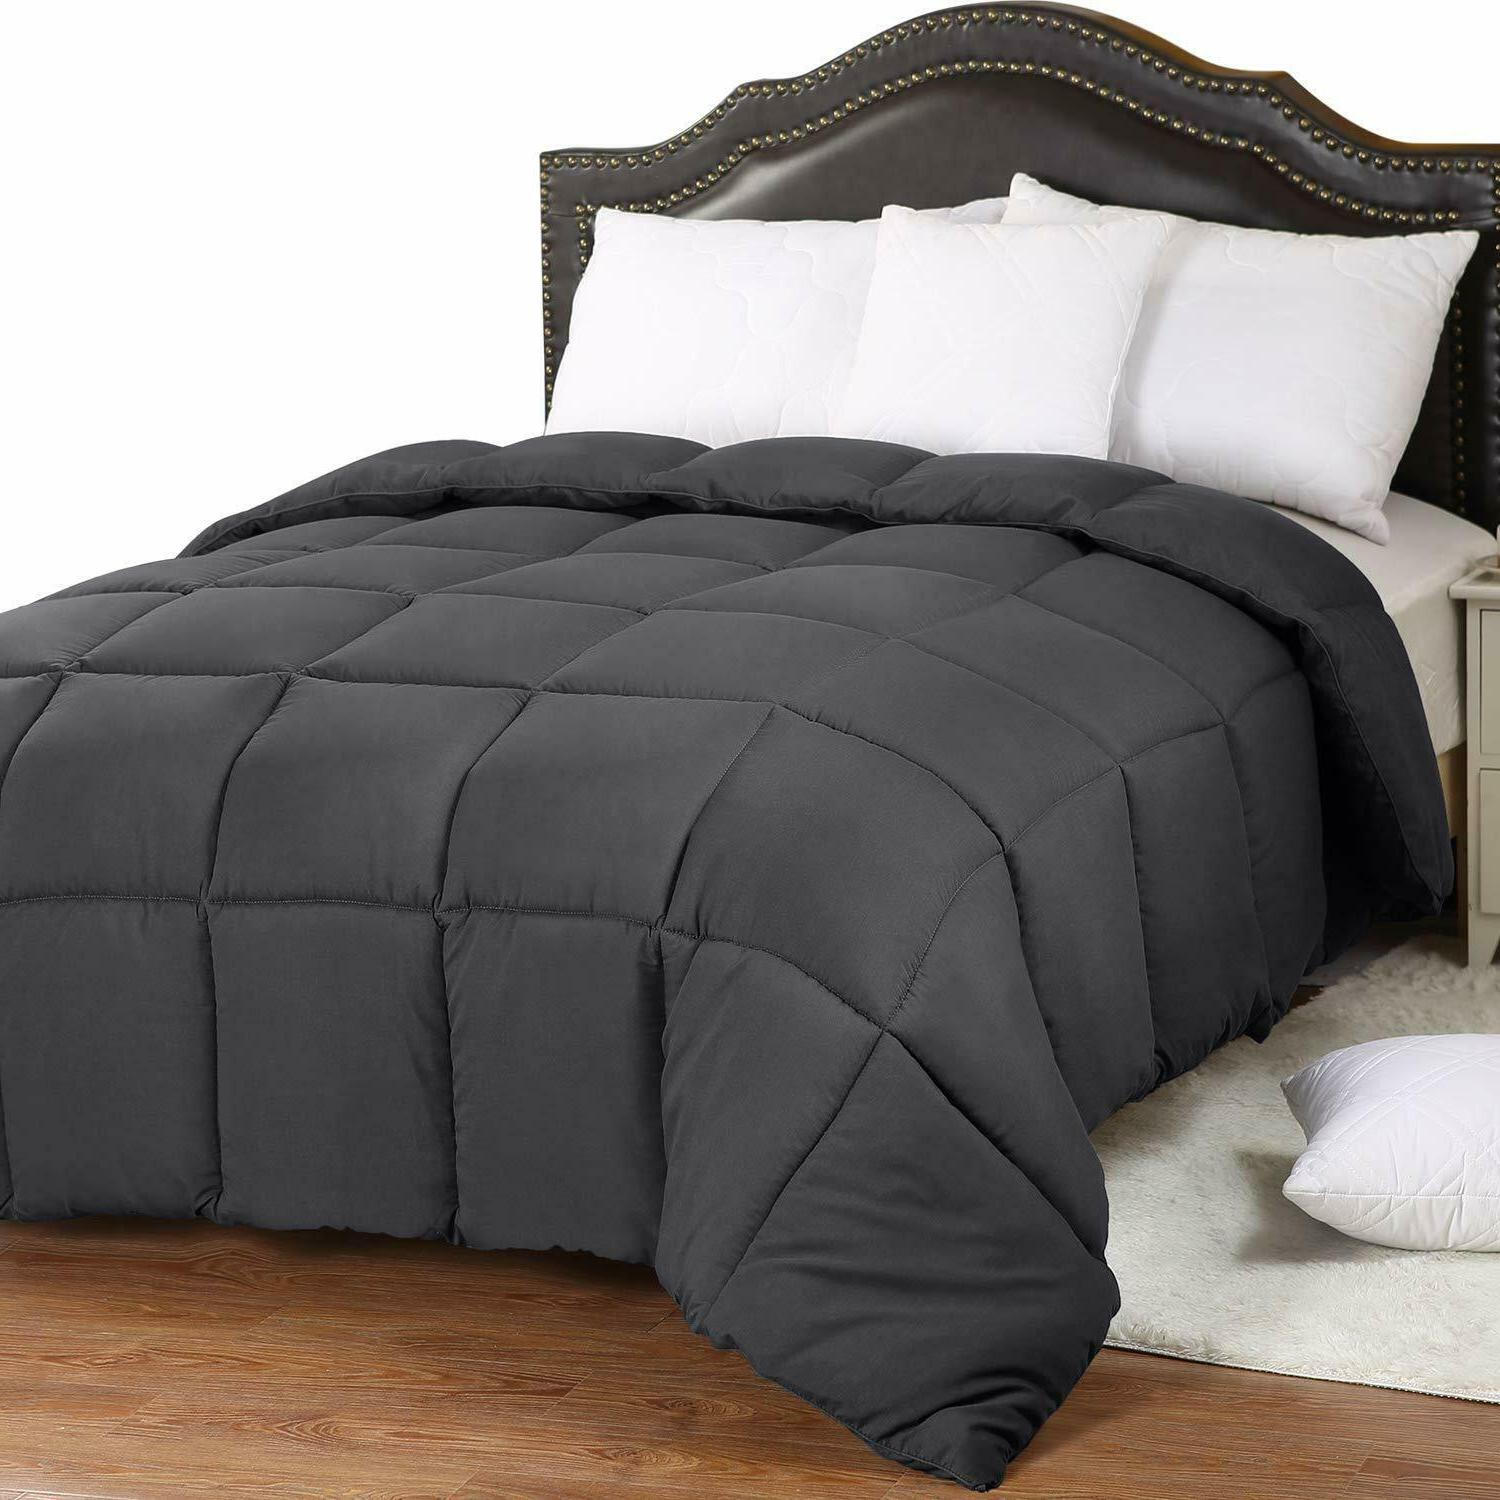 comforter down alternative white all season duvet